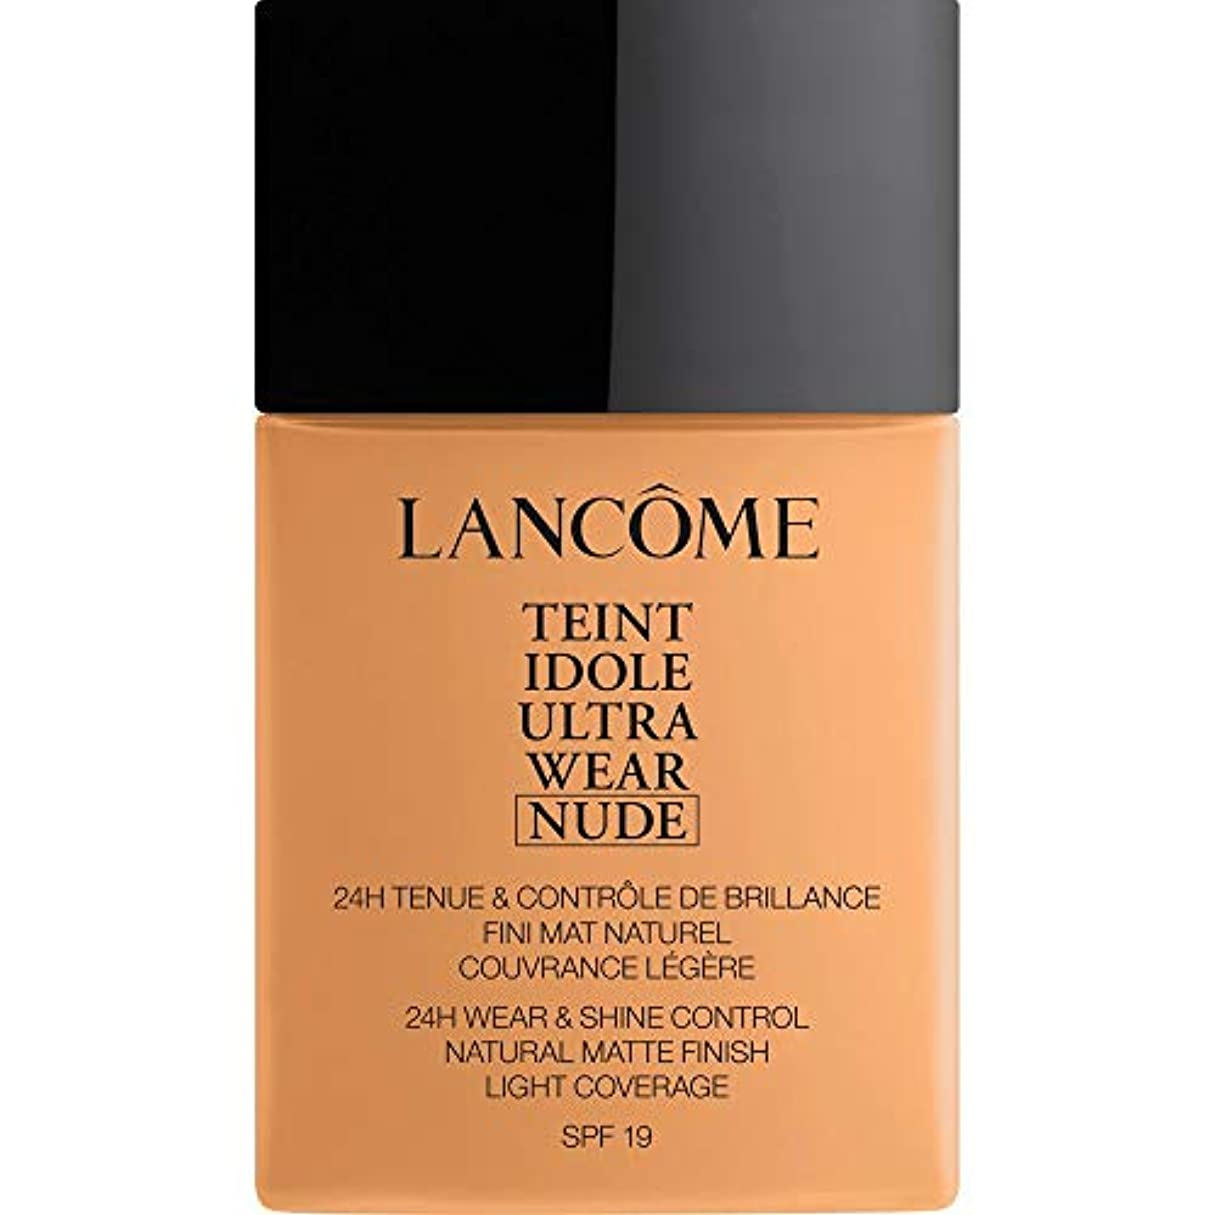 [Lanc?me ] ランコムTeintのIdole超摩耗ヌード財団Spf19の40ミリリットル051 - Chataigne - Lancome Teint Idole Ultra Wear Nude Foundation...